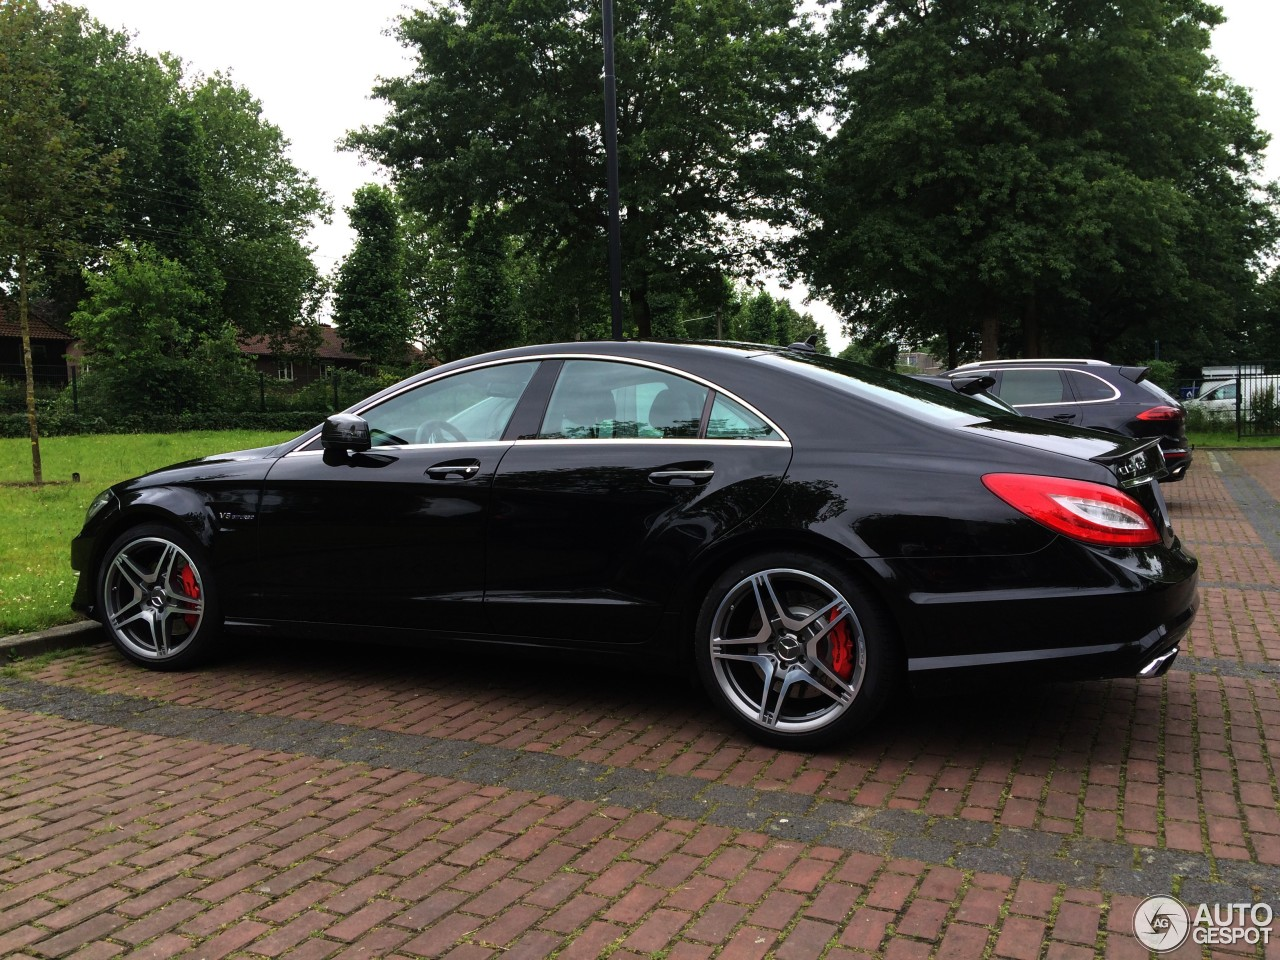 Mercedes benz cls 63 amg c218 14 june 2016 autogespot for Mercedes benz cls 63 amg price